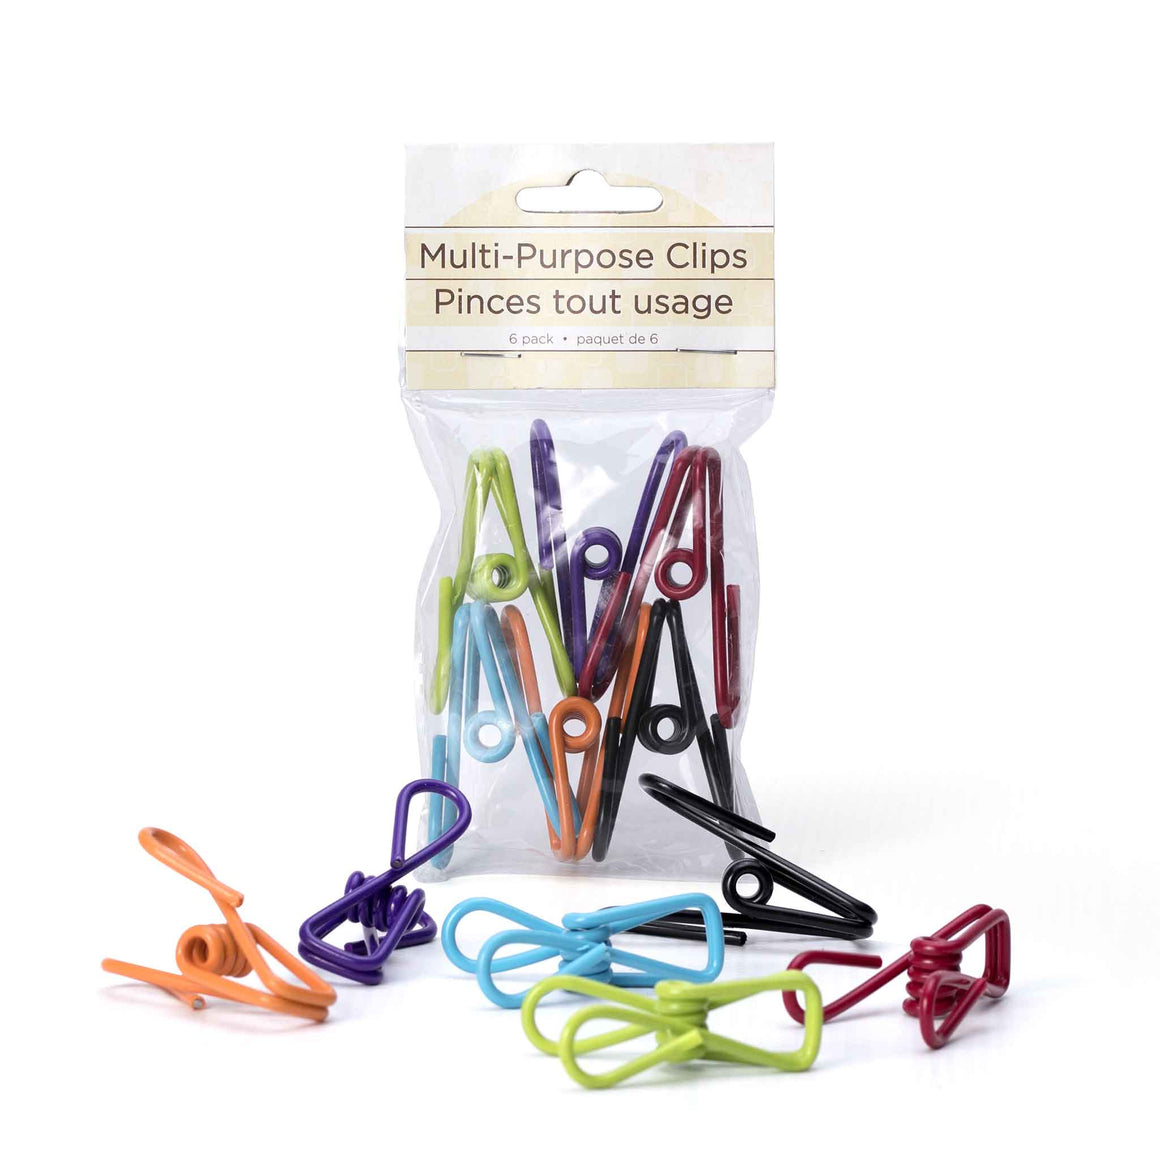 Multi-purpose Clips product image - included with Dr. Don's Care Packages College Student Care Package.